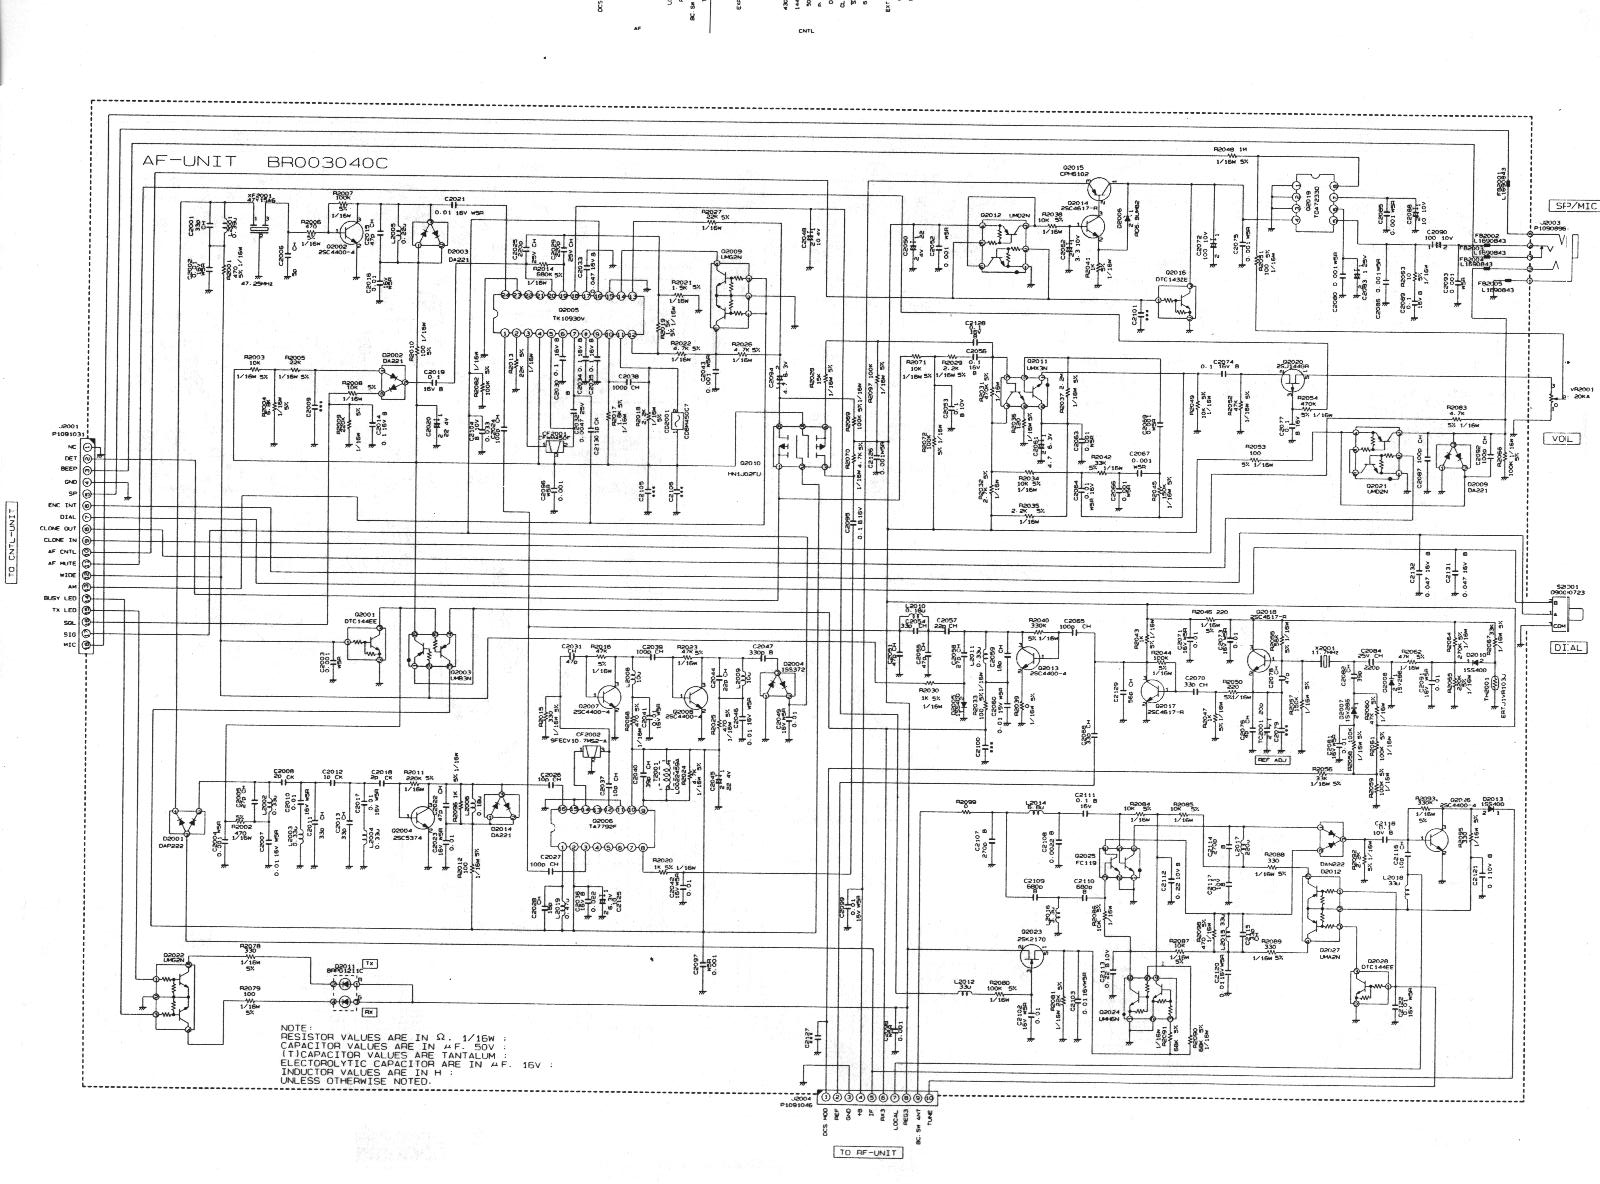 YAESU VX 5 Schematic a index of pub radio_manuals yaesu Yaesu G-450A at n-0.co